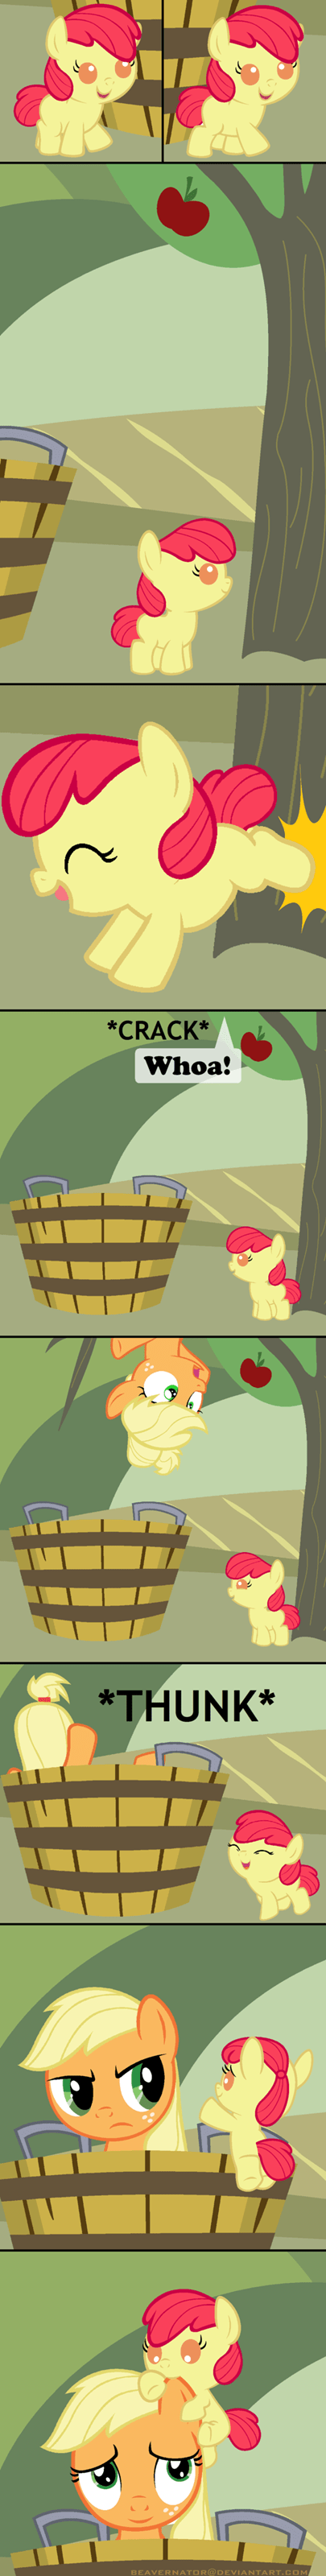 applejack,apple bloom,cute